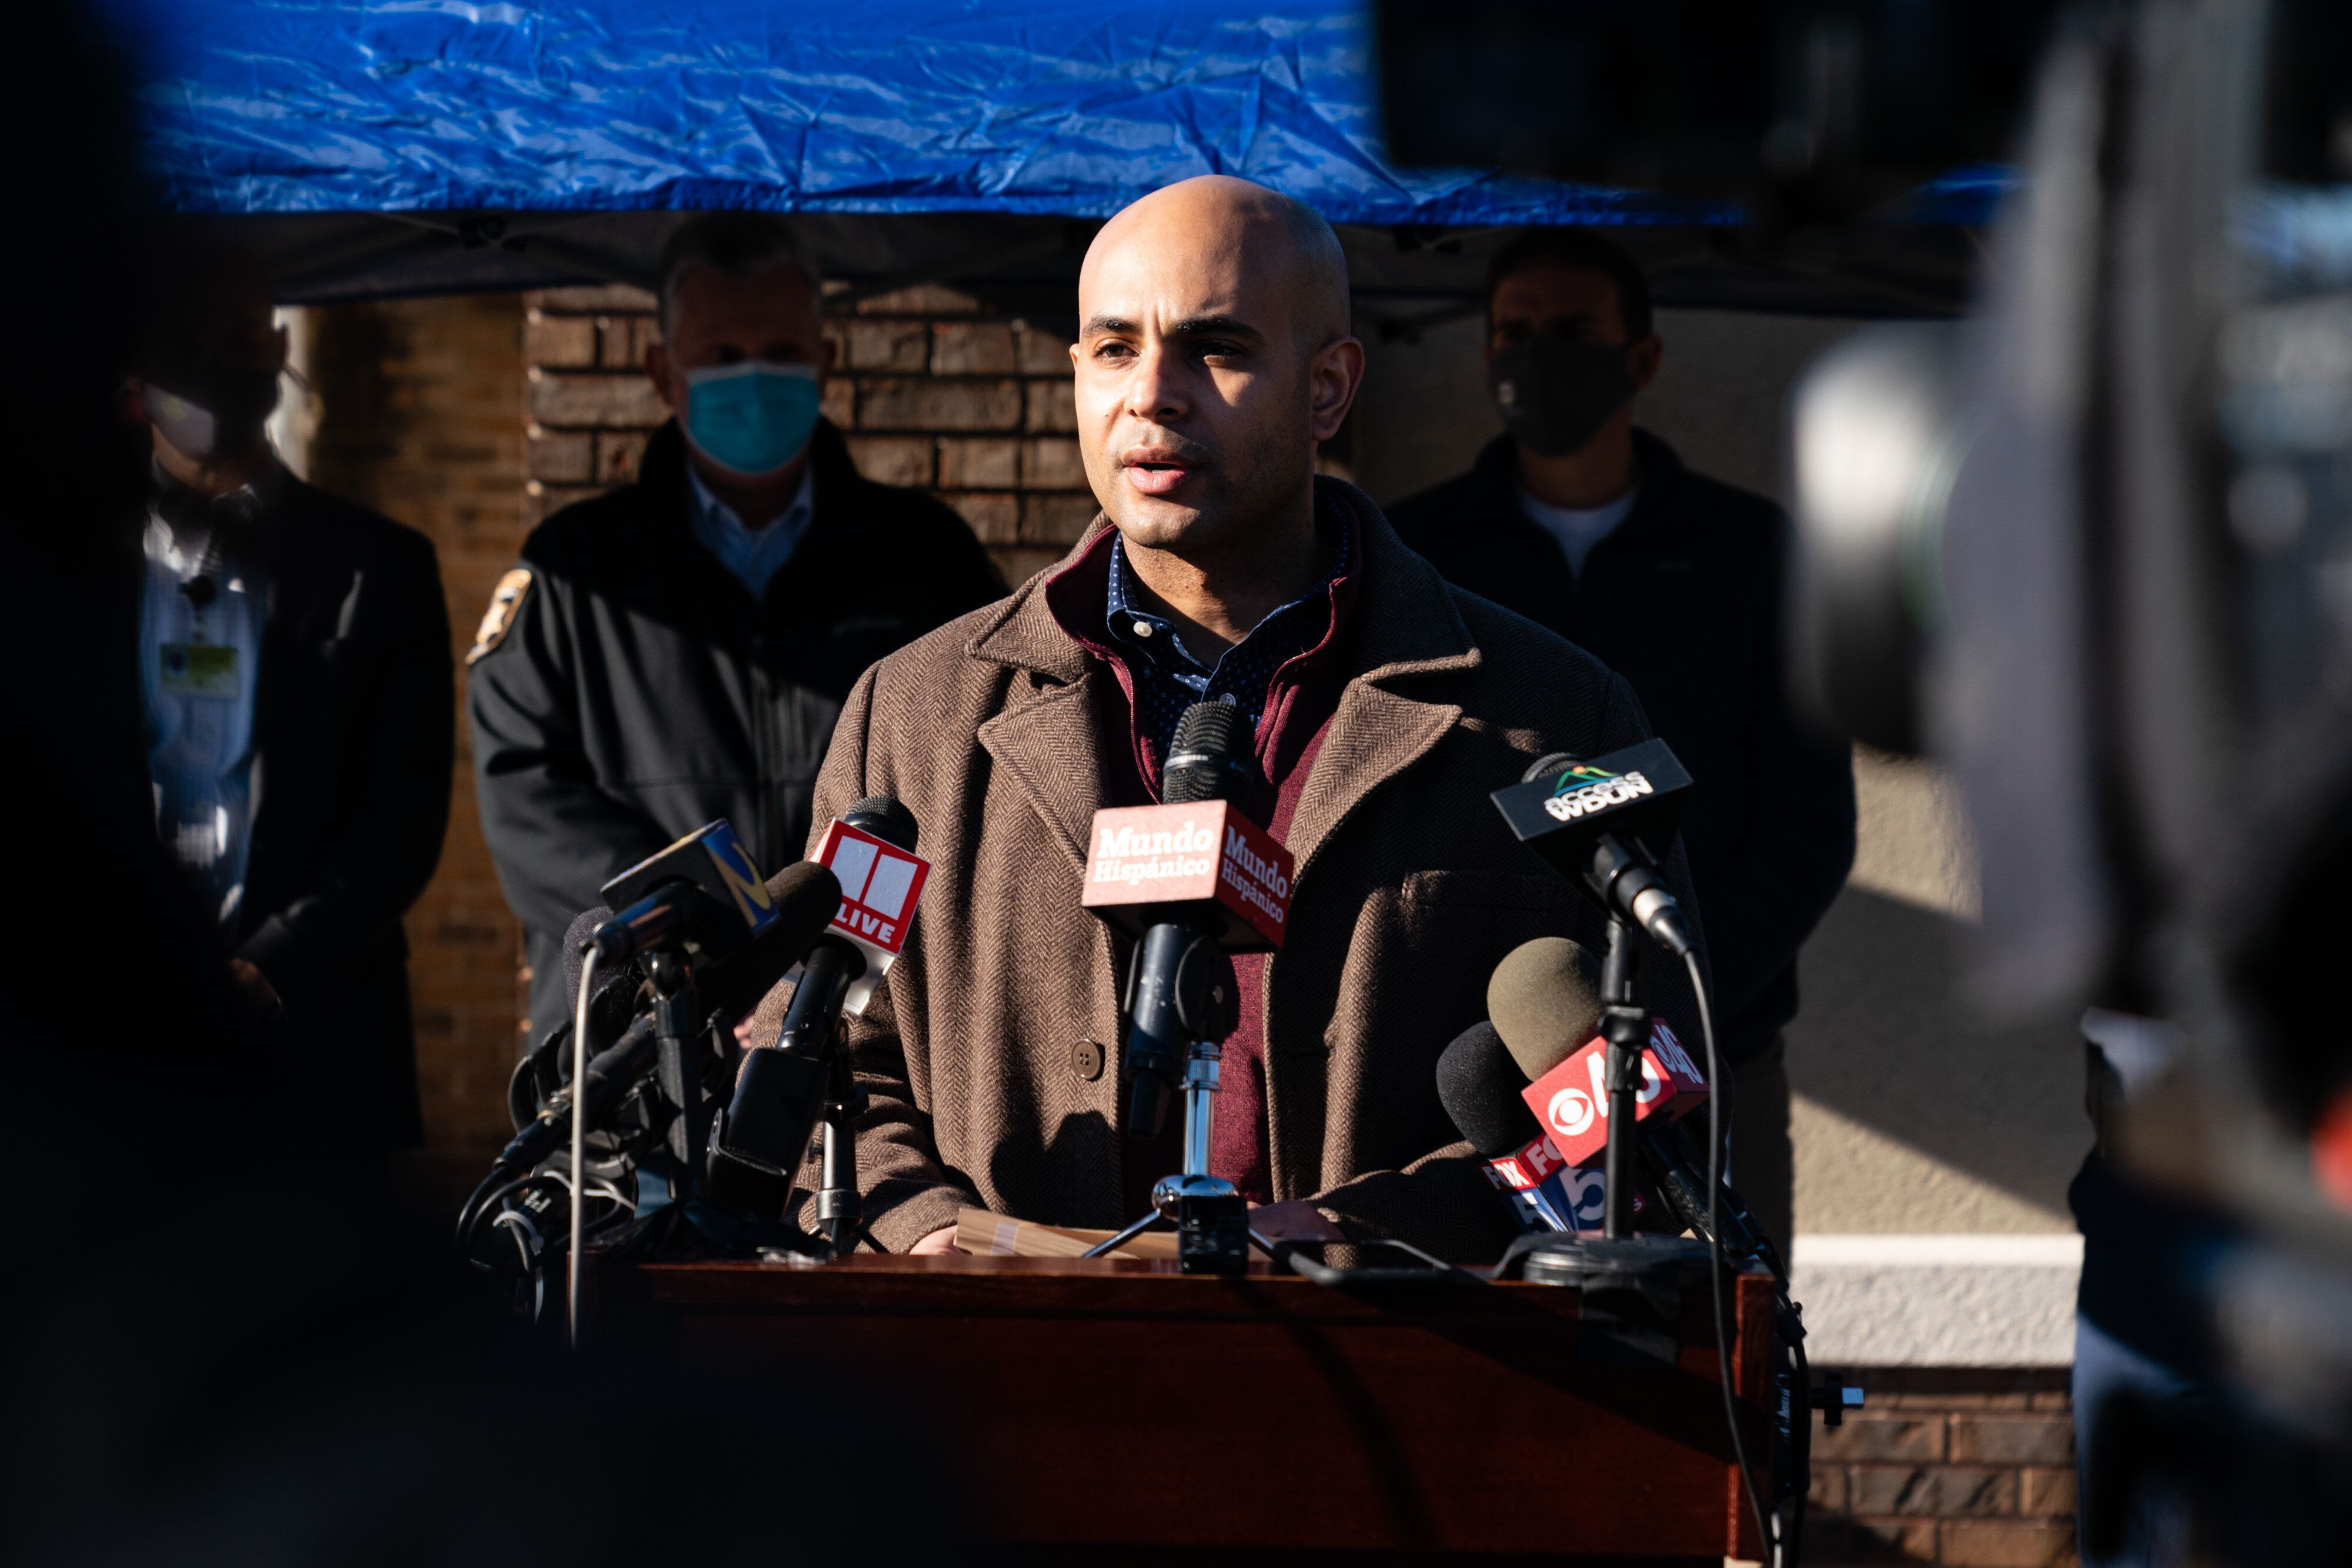 Nicholas Ancrum, vice president of human relations for Foundation Food Group, speaking at a press conference following the de